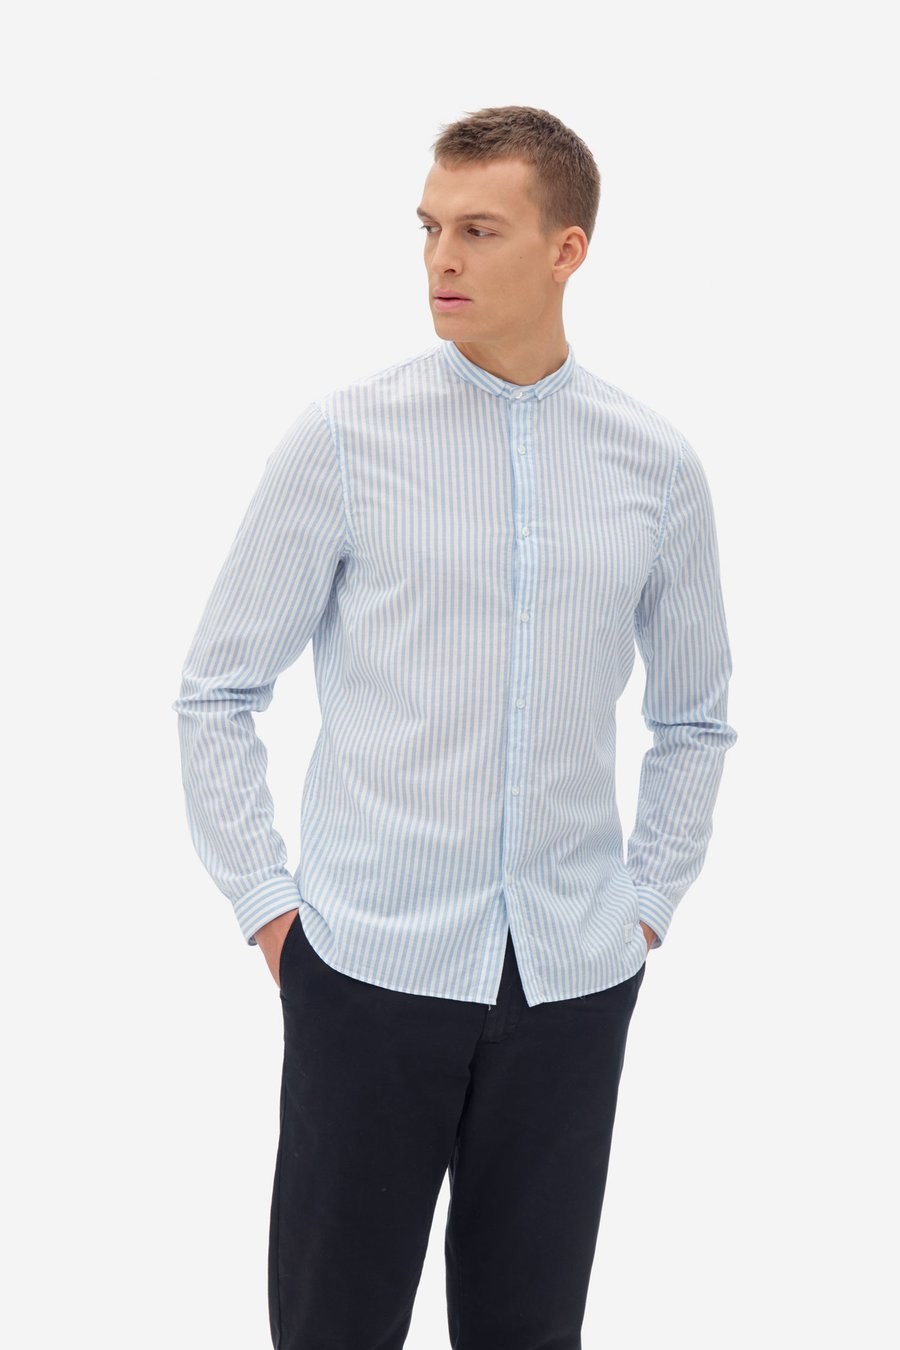 NOWADAYS SEERSUCKER STRIPE SHIRT BLUE / WHITE